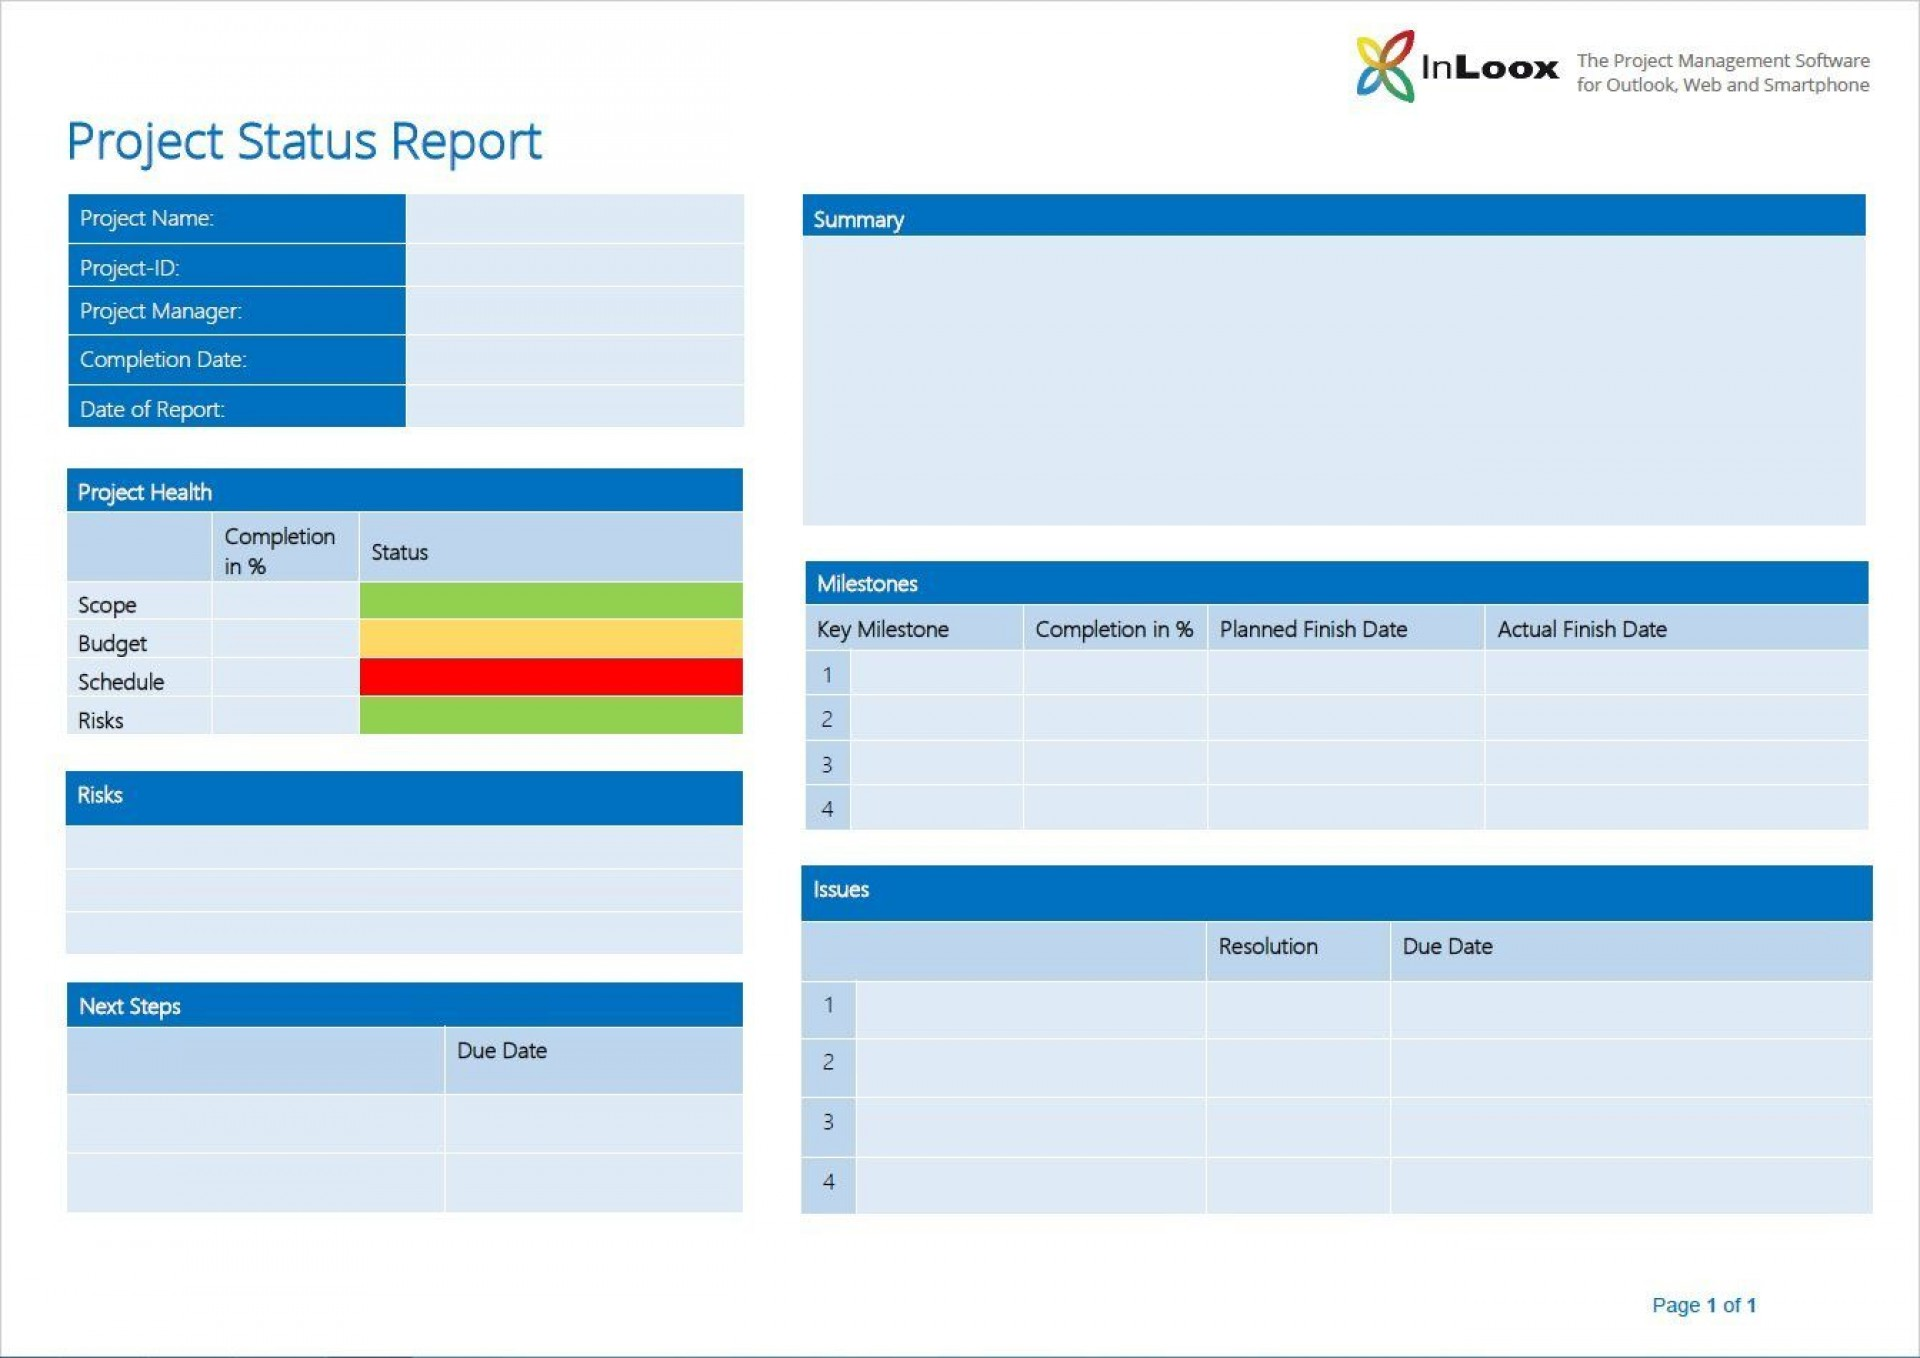 006 Excellent Project Management Weekly Statu Report Sample High Definition  Template Excel Ppt1920